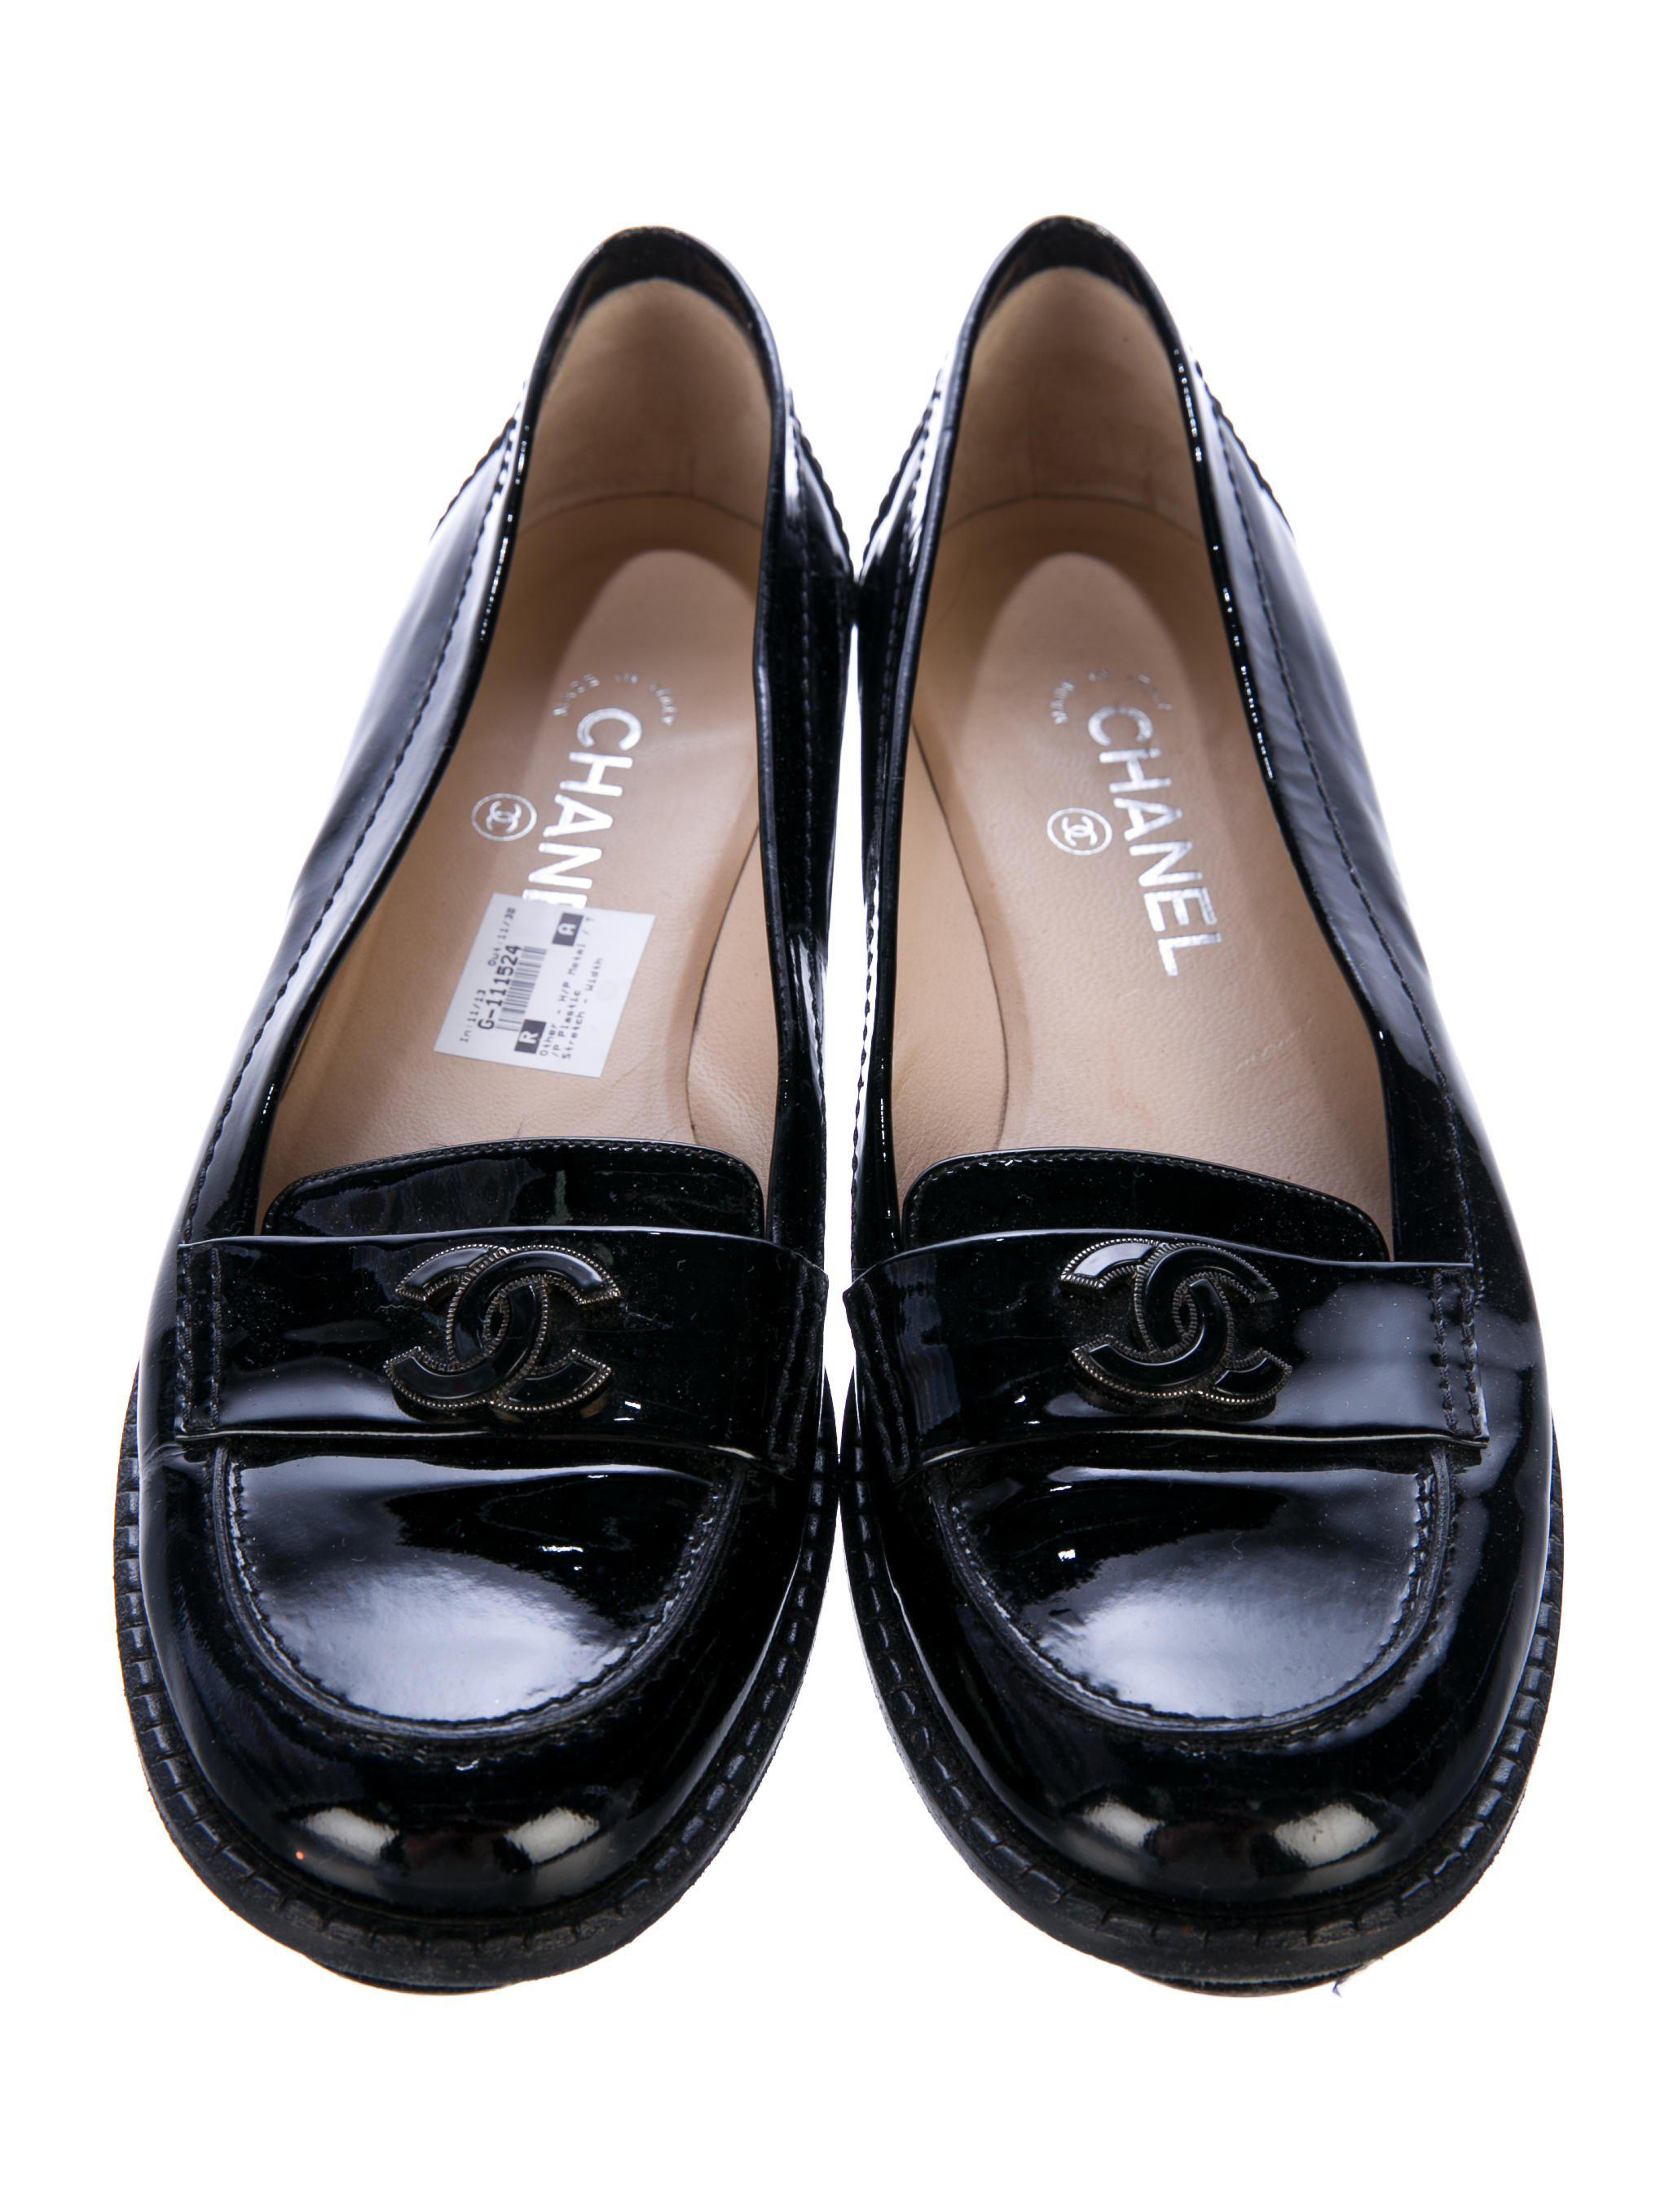 e69eacc1113 Lyst - Chanel Patent Leather Cc Loafers in Black